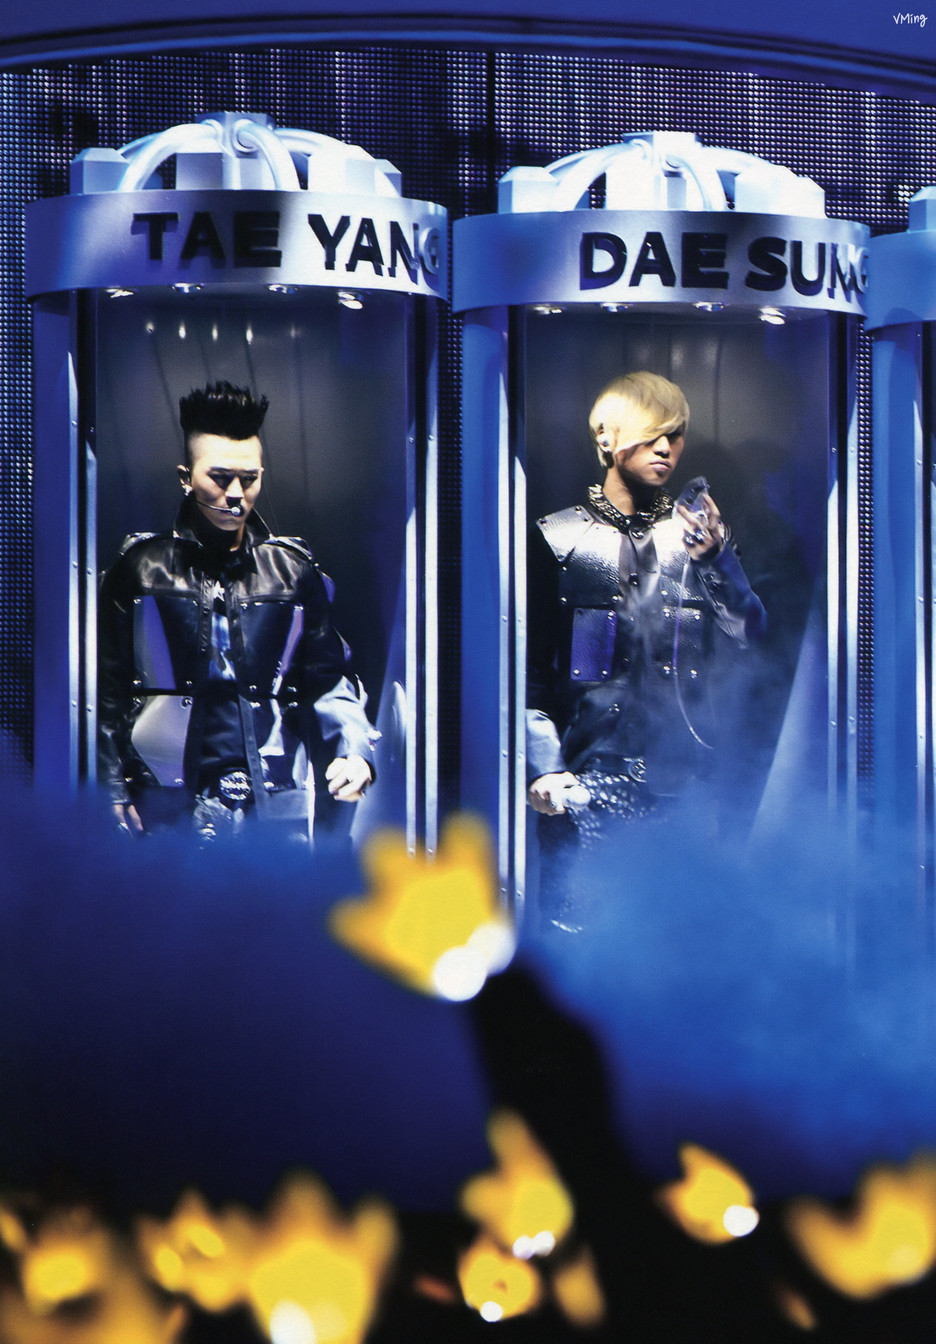 Daesung: Alive Tour in Seoul Photo Book Scans [PHOTOS]  Daesung: Alive Tour in Seoul Photo Book Scans [PHOTOS]  Daesung: Alive Tour in Seoul Photo Book Scans [PHOTOS]  Daesung: Alive Tour in Seoul Photo Book Scans [PHOTOS]  Daesung: Alive Tour in Seoul Photo Book Scans [PHOTOS]